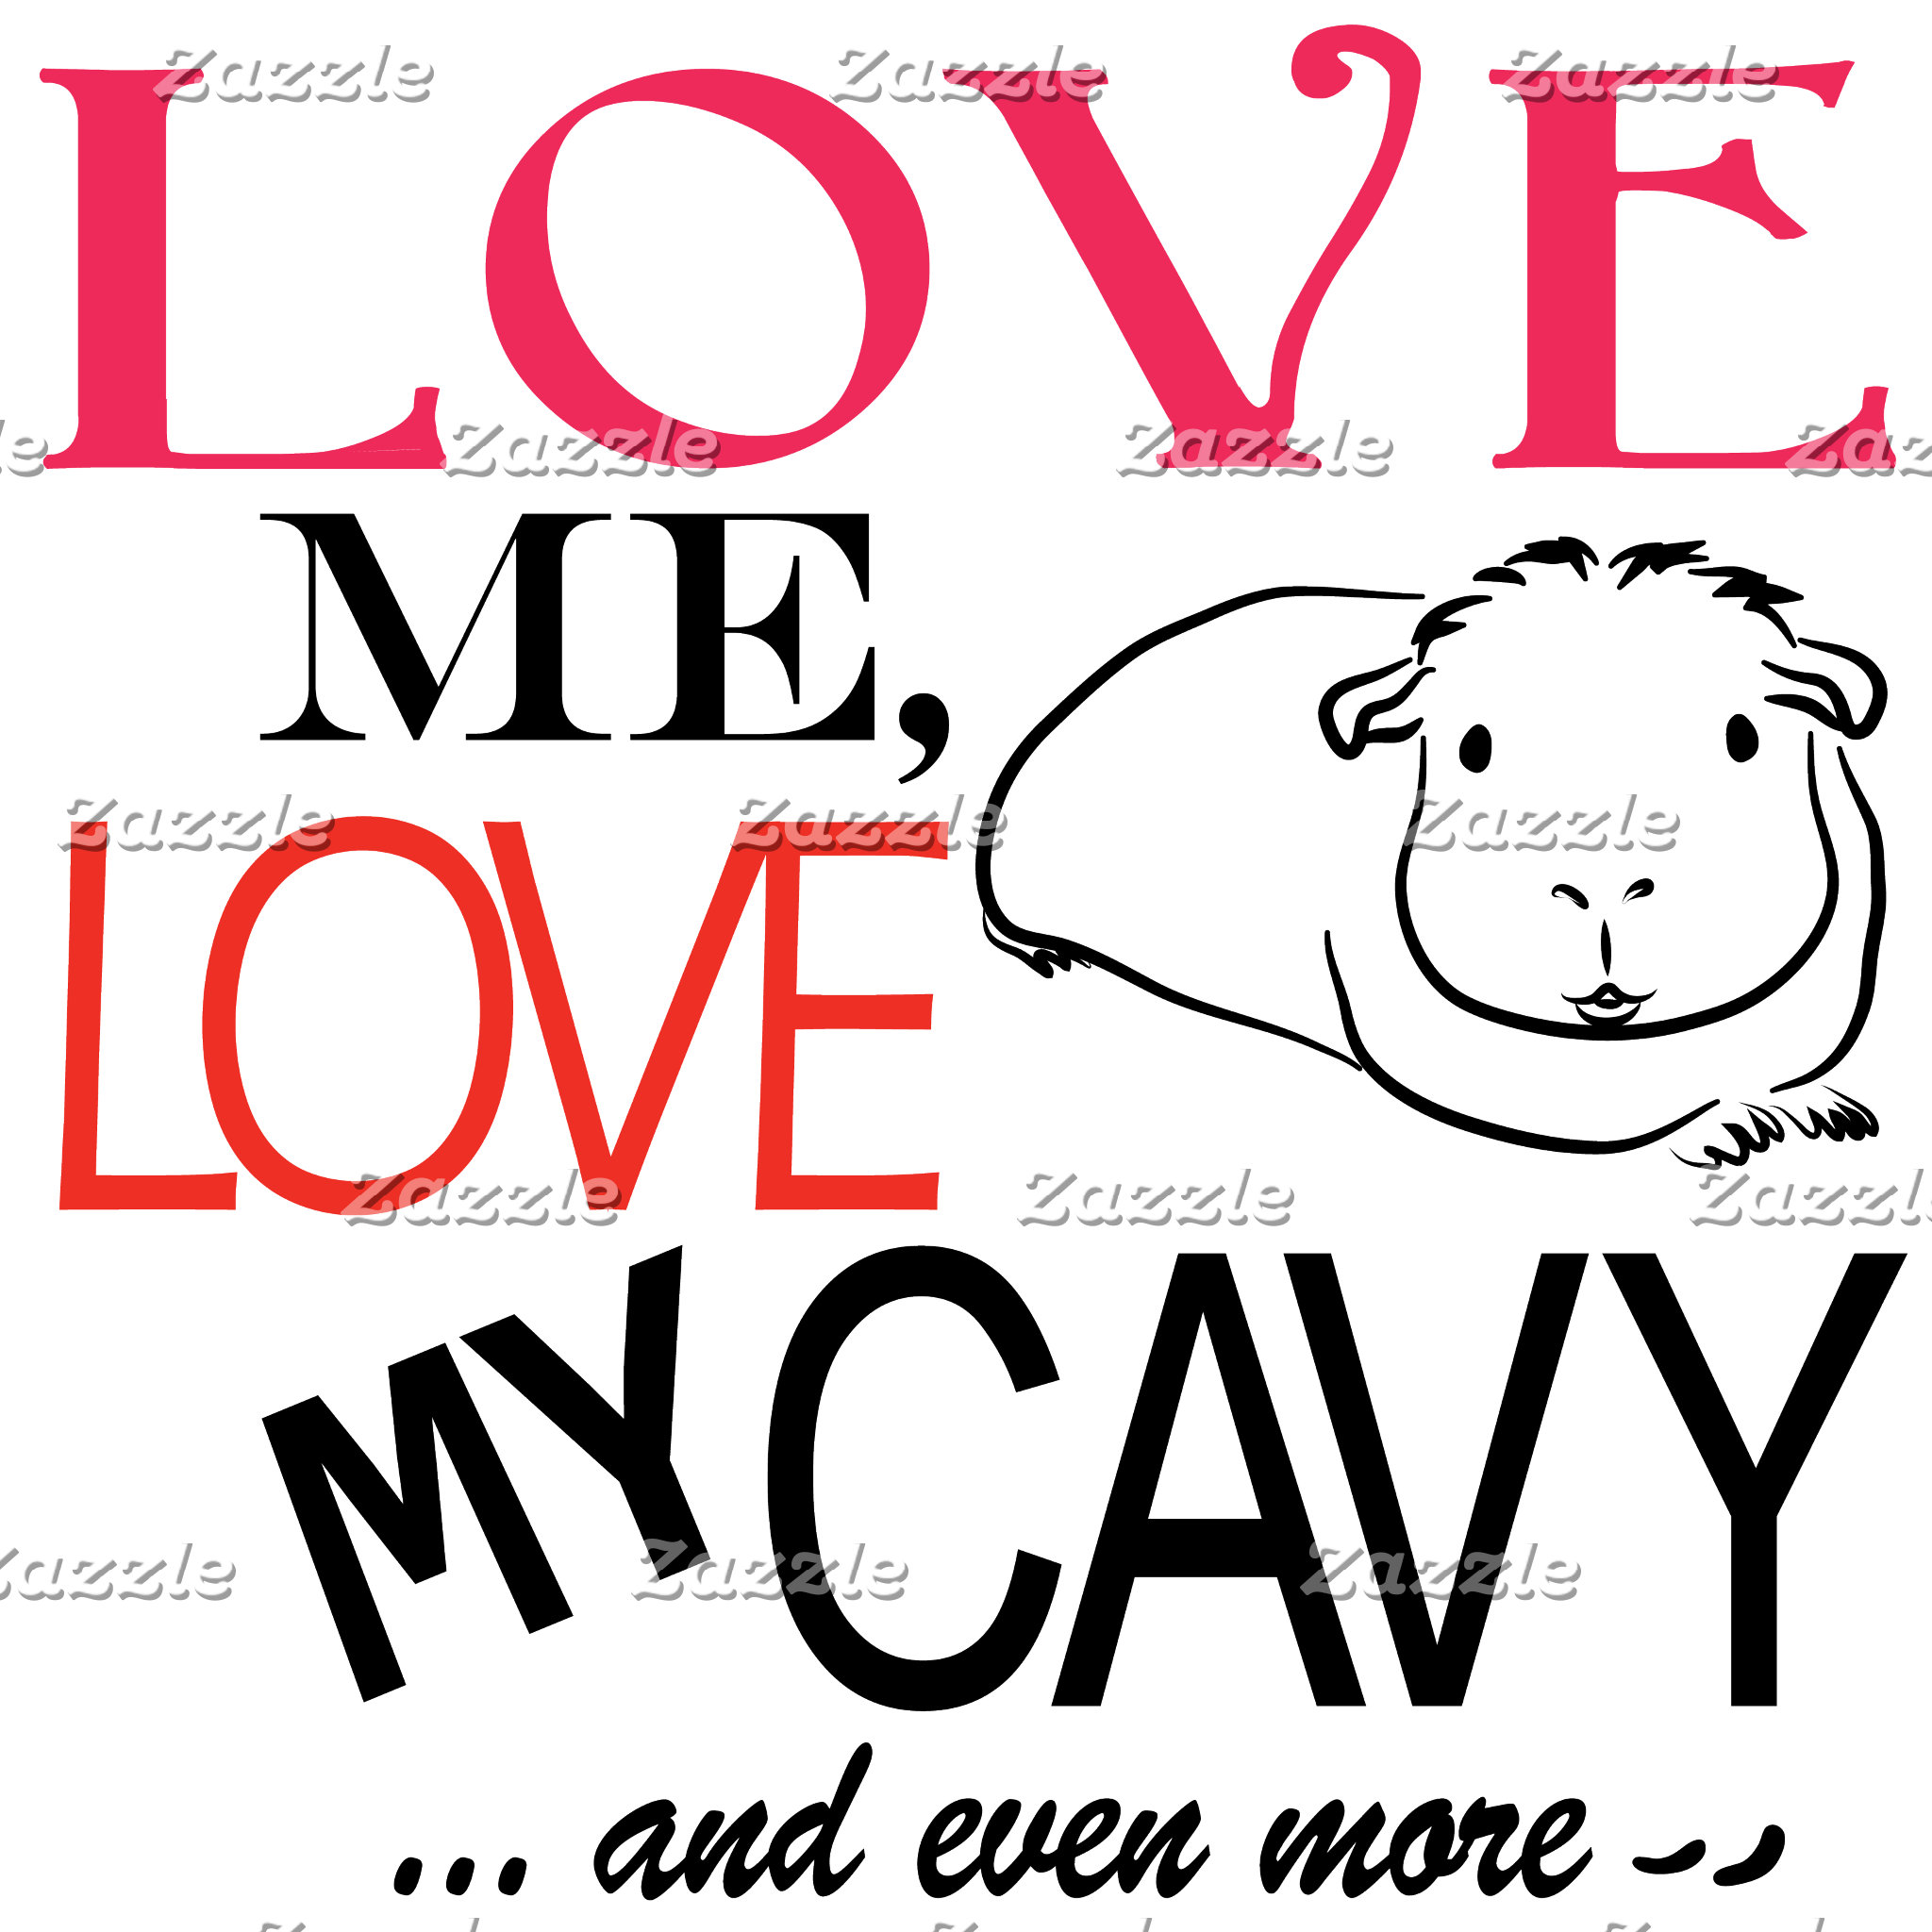 Love me, Love my cavy